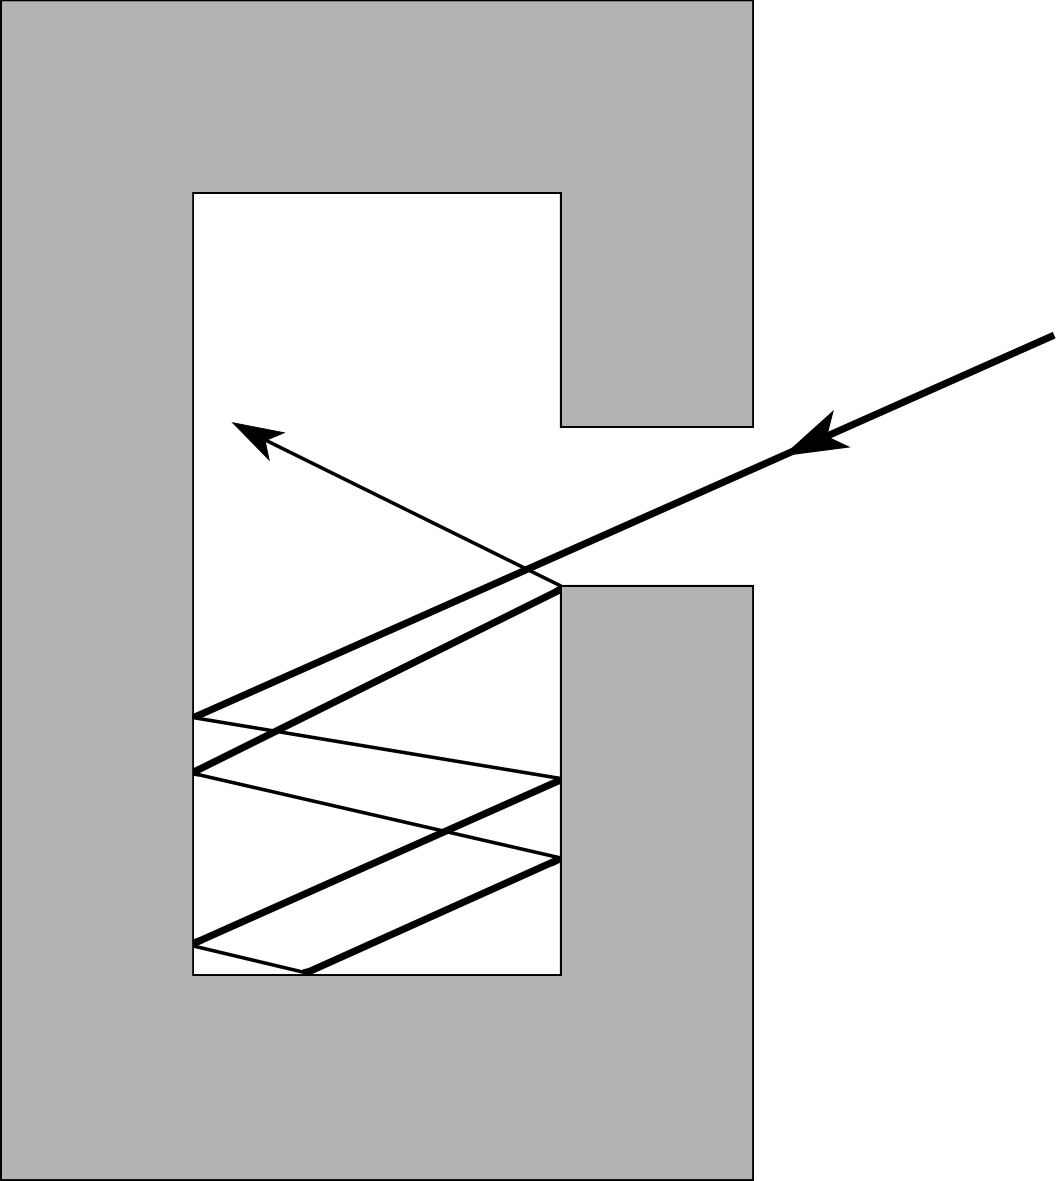 Pplato Flap Phys 73 Internal Energy Heat And Transfer Diagram Illustrating By Radiation Figure